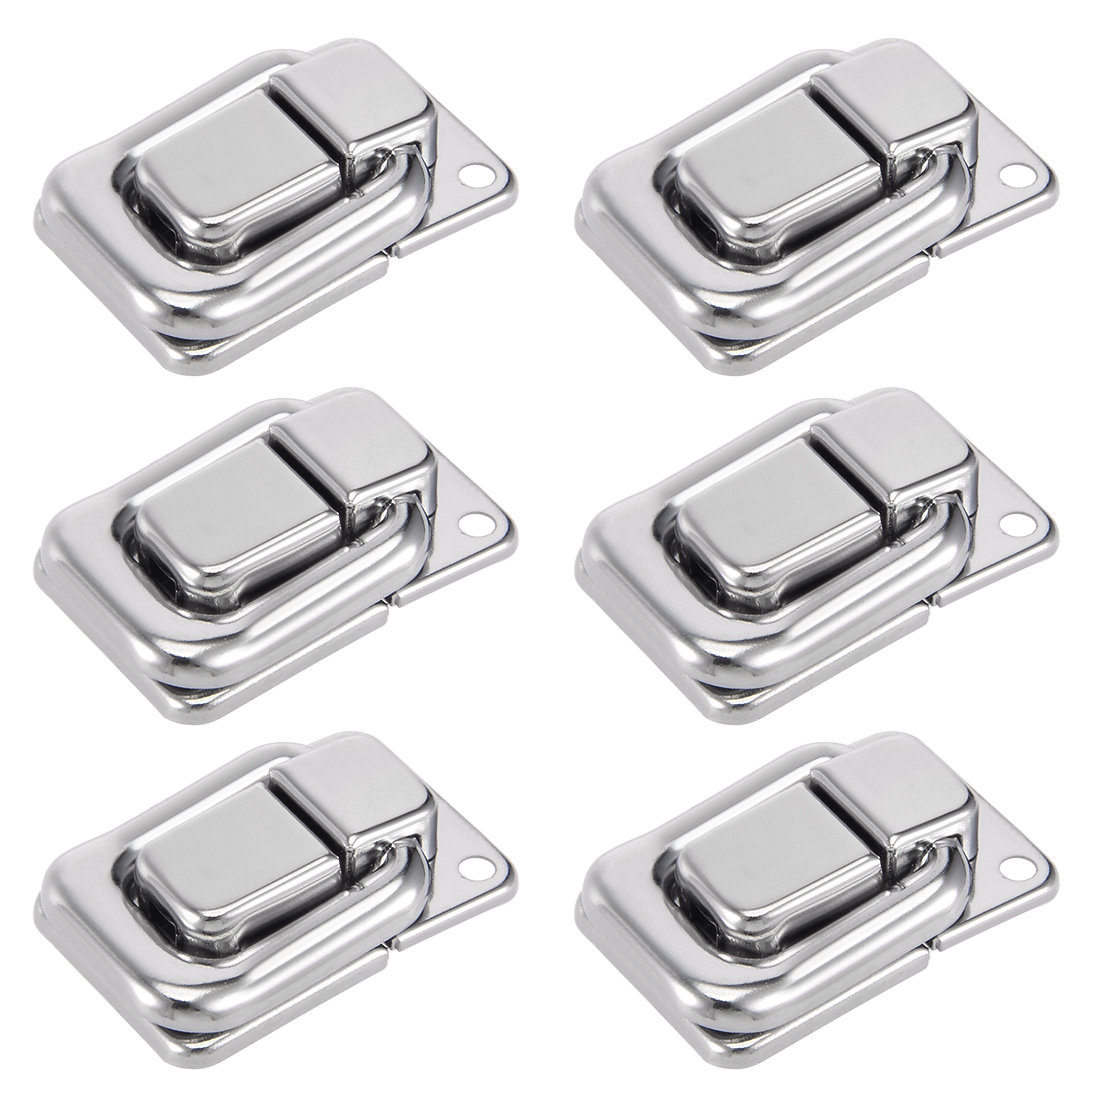 6pcs 38mmx26mm Iron Chrome Finished Toolbox Cabinet Toggle Hasp Catch